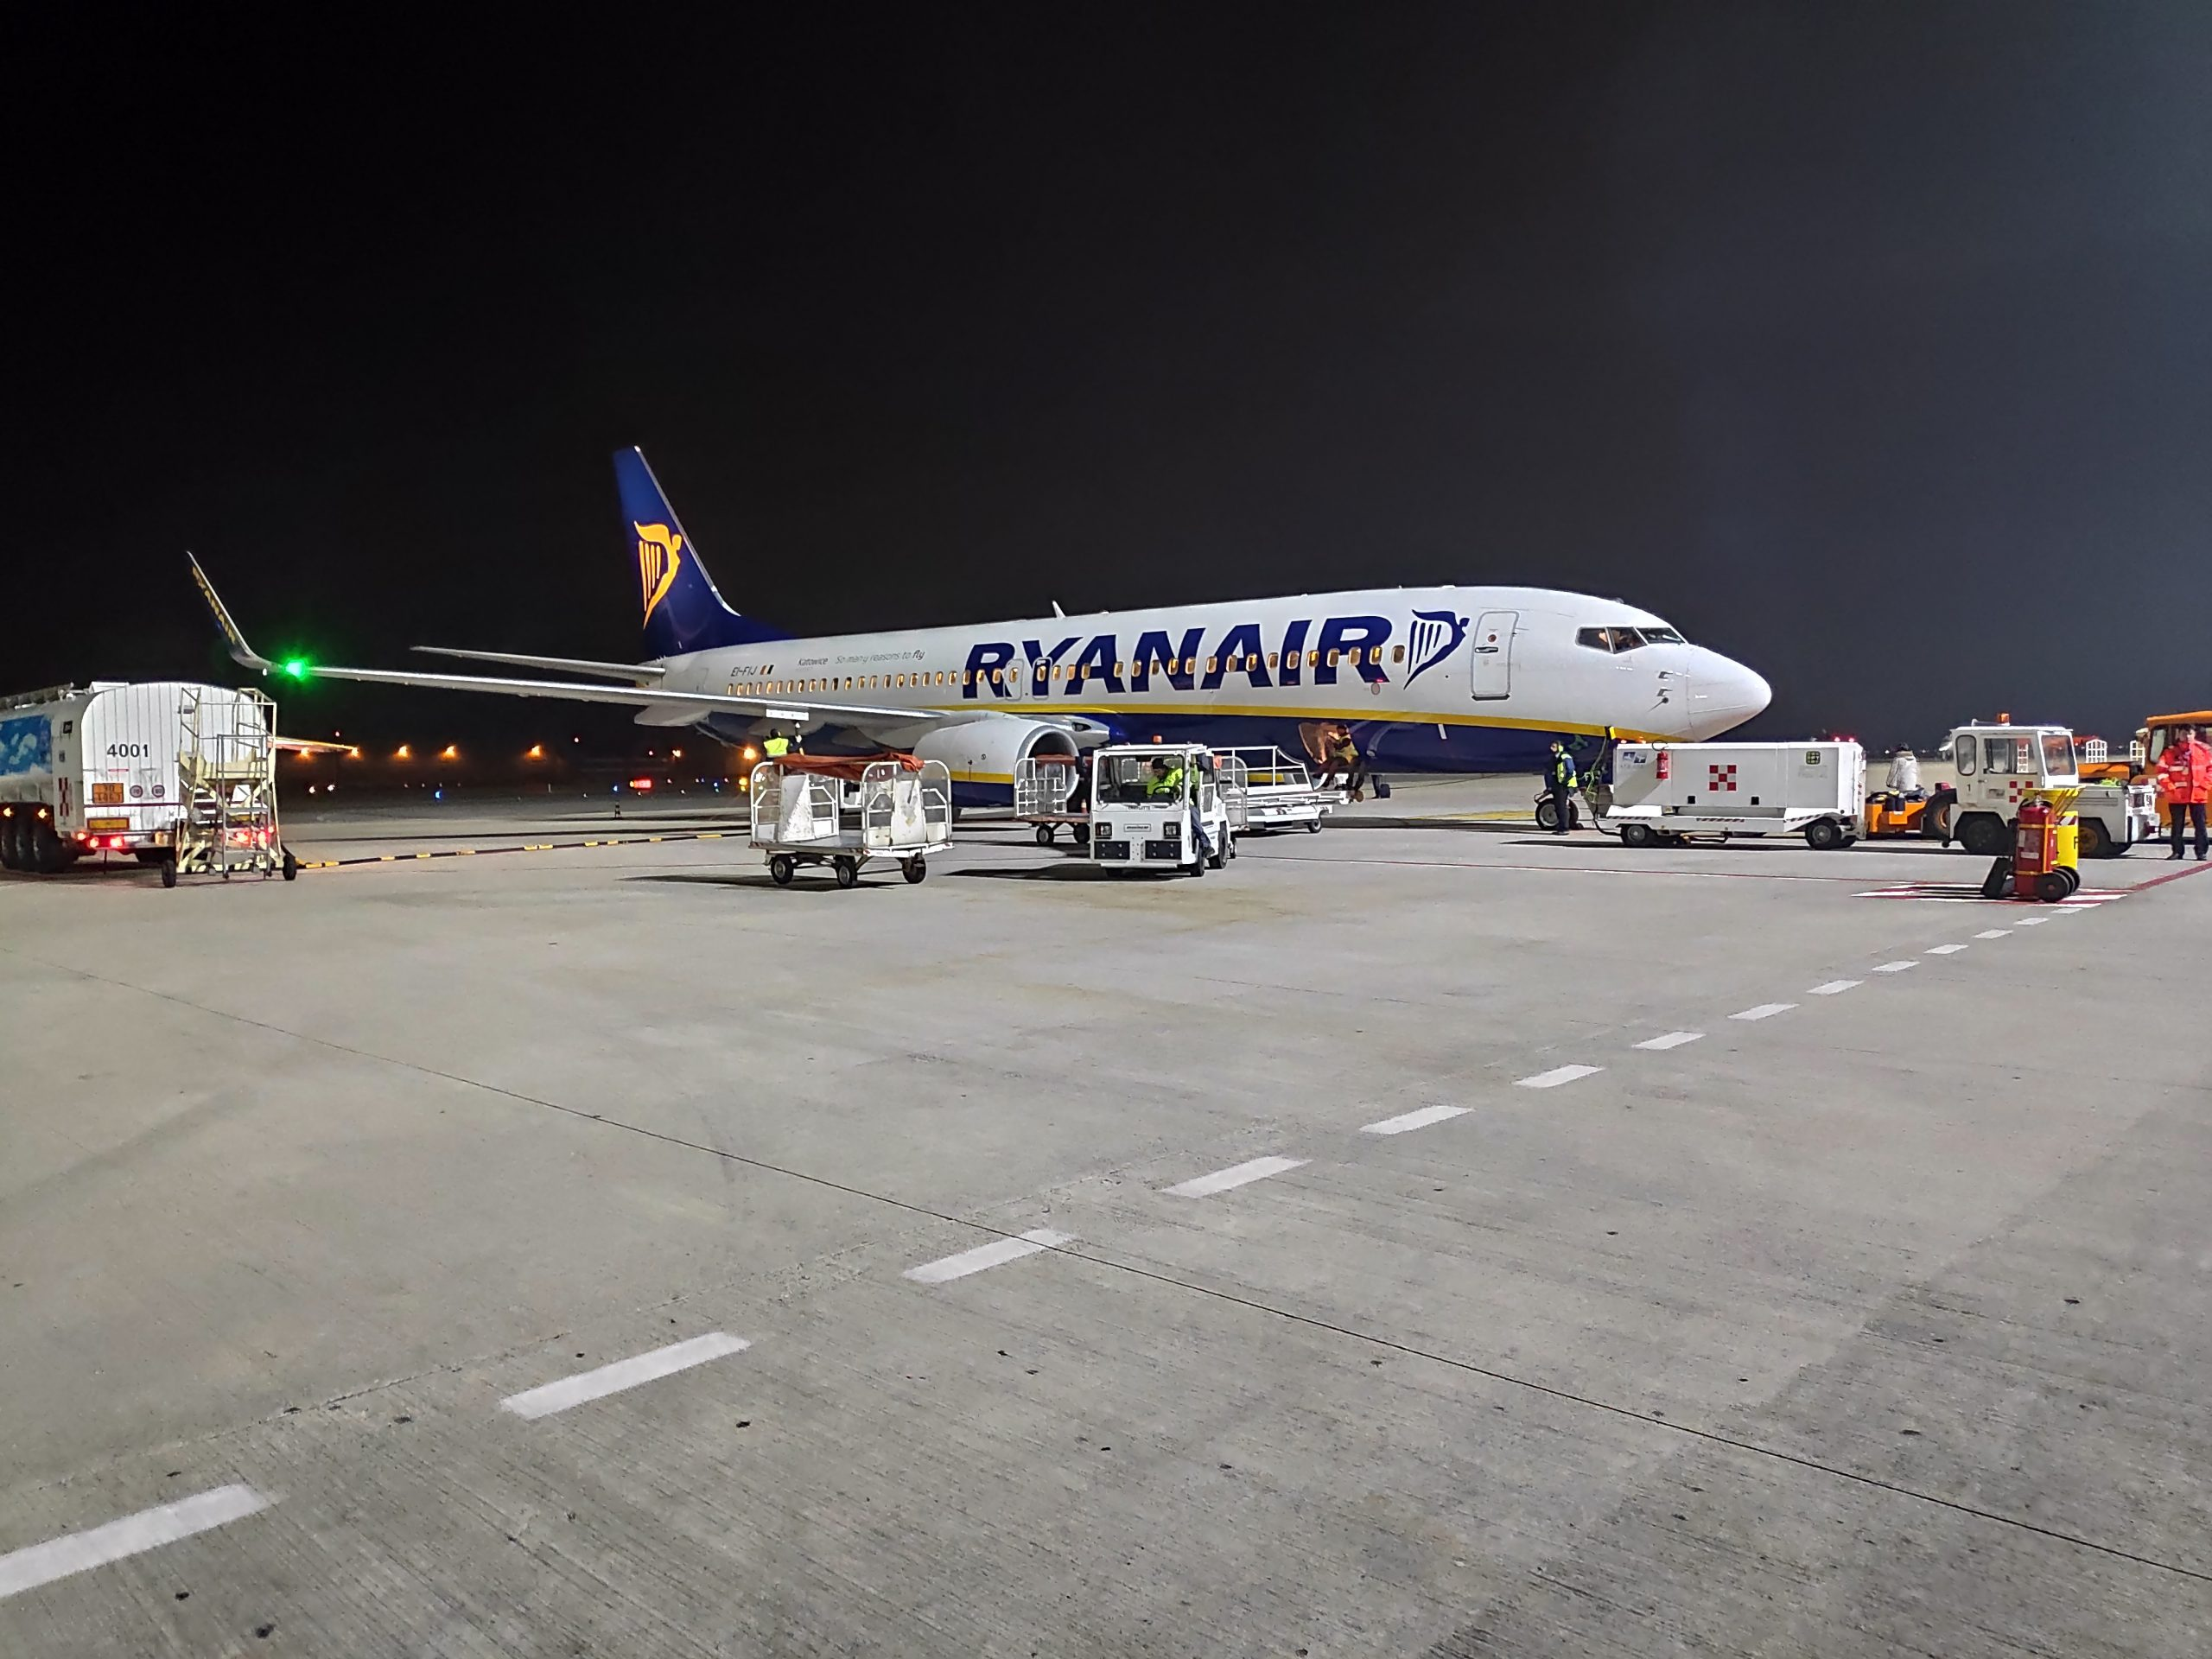 We took Ryanair, since we didn't had any stowed luggage, it was by far the cheapest option, if I remember correctly it was less than 70€ for return ticket.